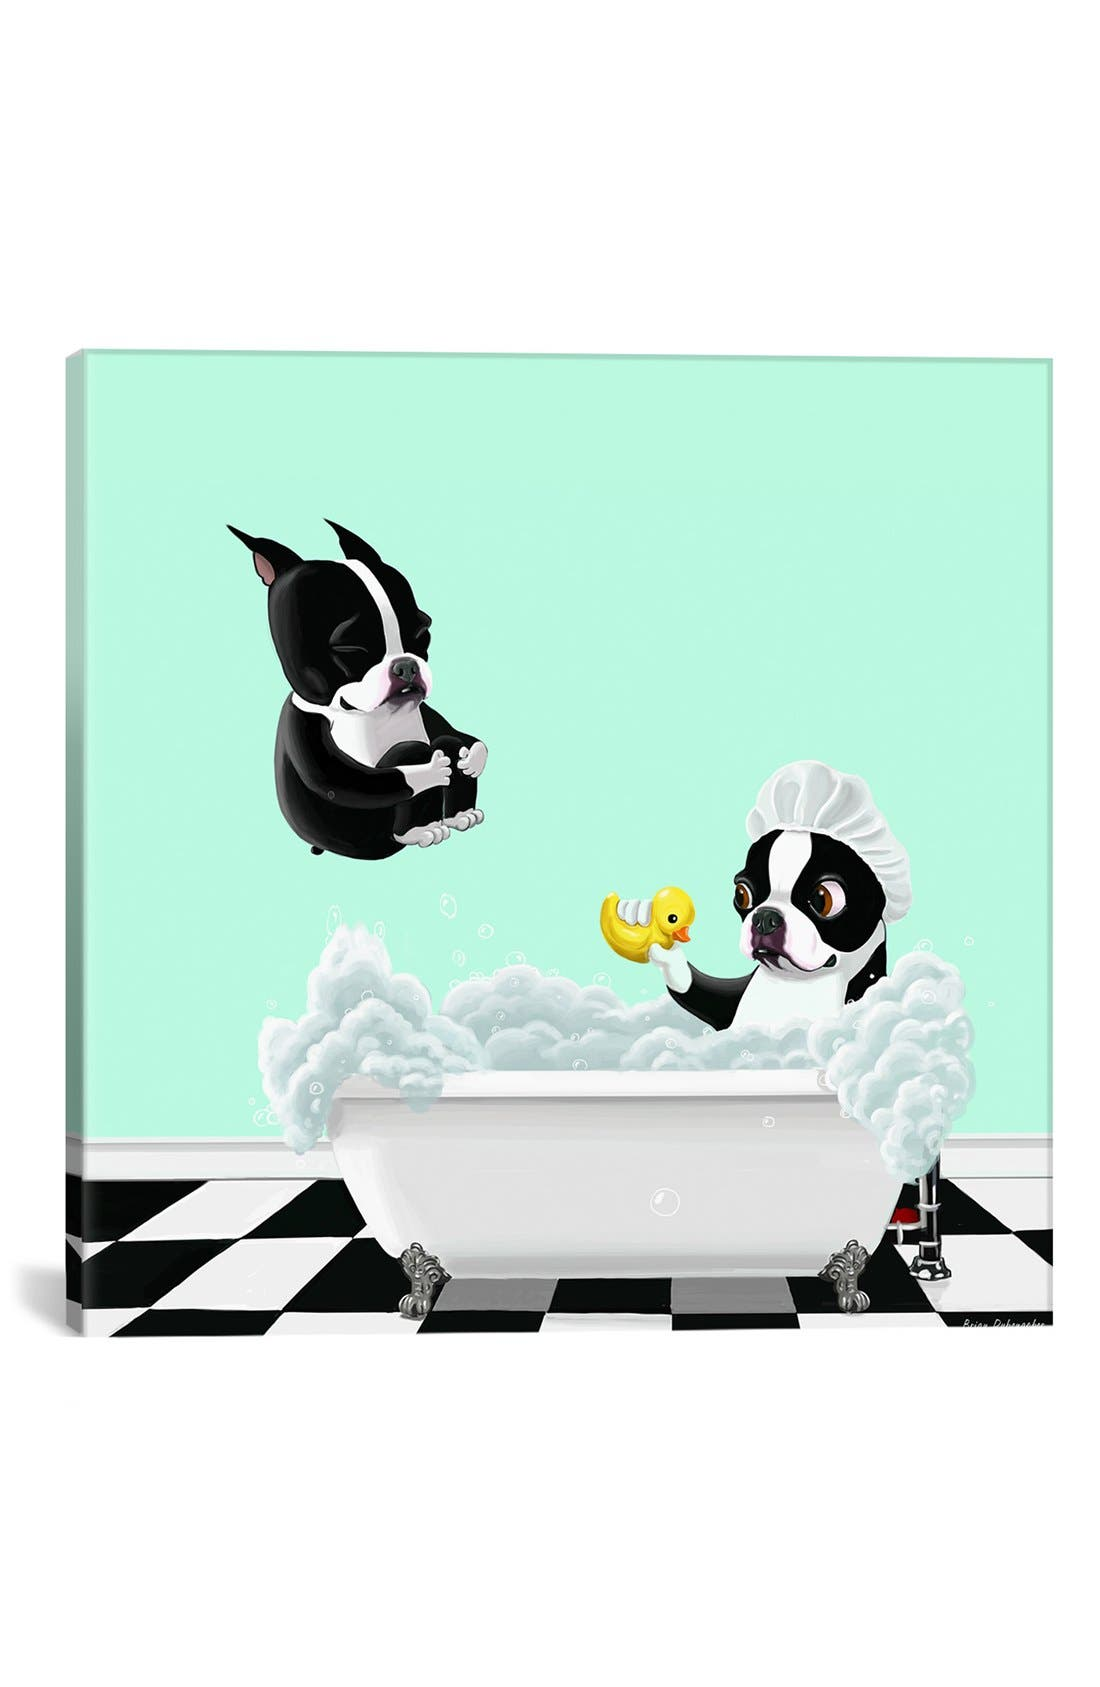 Alternate Image 1 Selected - iCanvas 'Bath Tub - Brian Rubenacker' Giclée Print Canvas Art